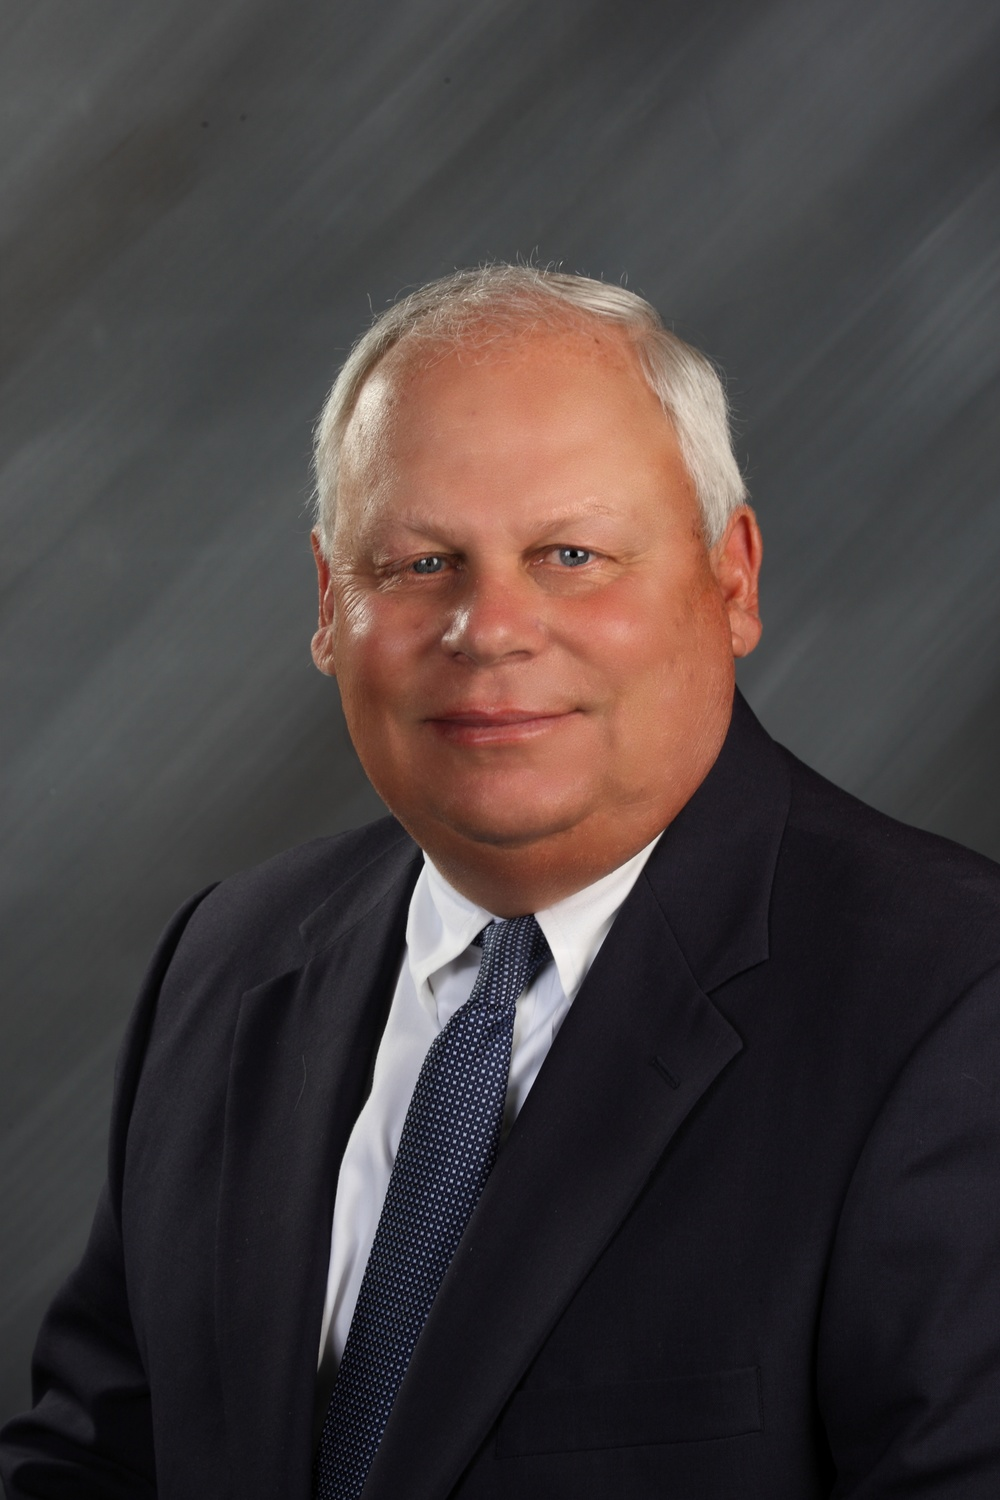 BOARD OF GOVERNORS & EXECUTIVE / GOVERNANCE COMMITTEE JOSEPH R. KRUSINSKI CHIEF EXECUTIVE OFFICER KRUSINSKI CONSTRUCTION COMPANY